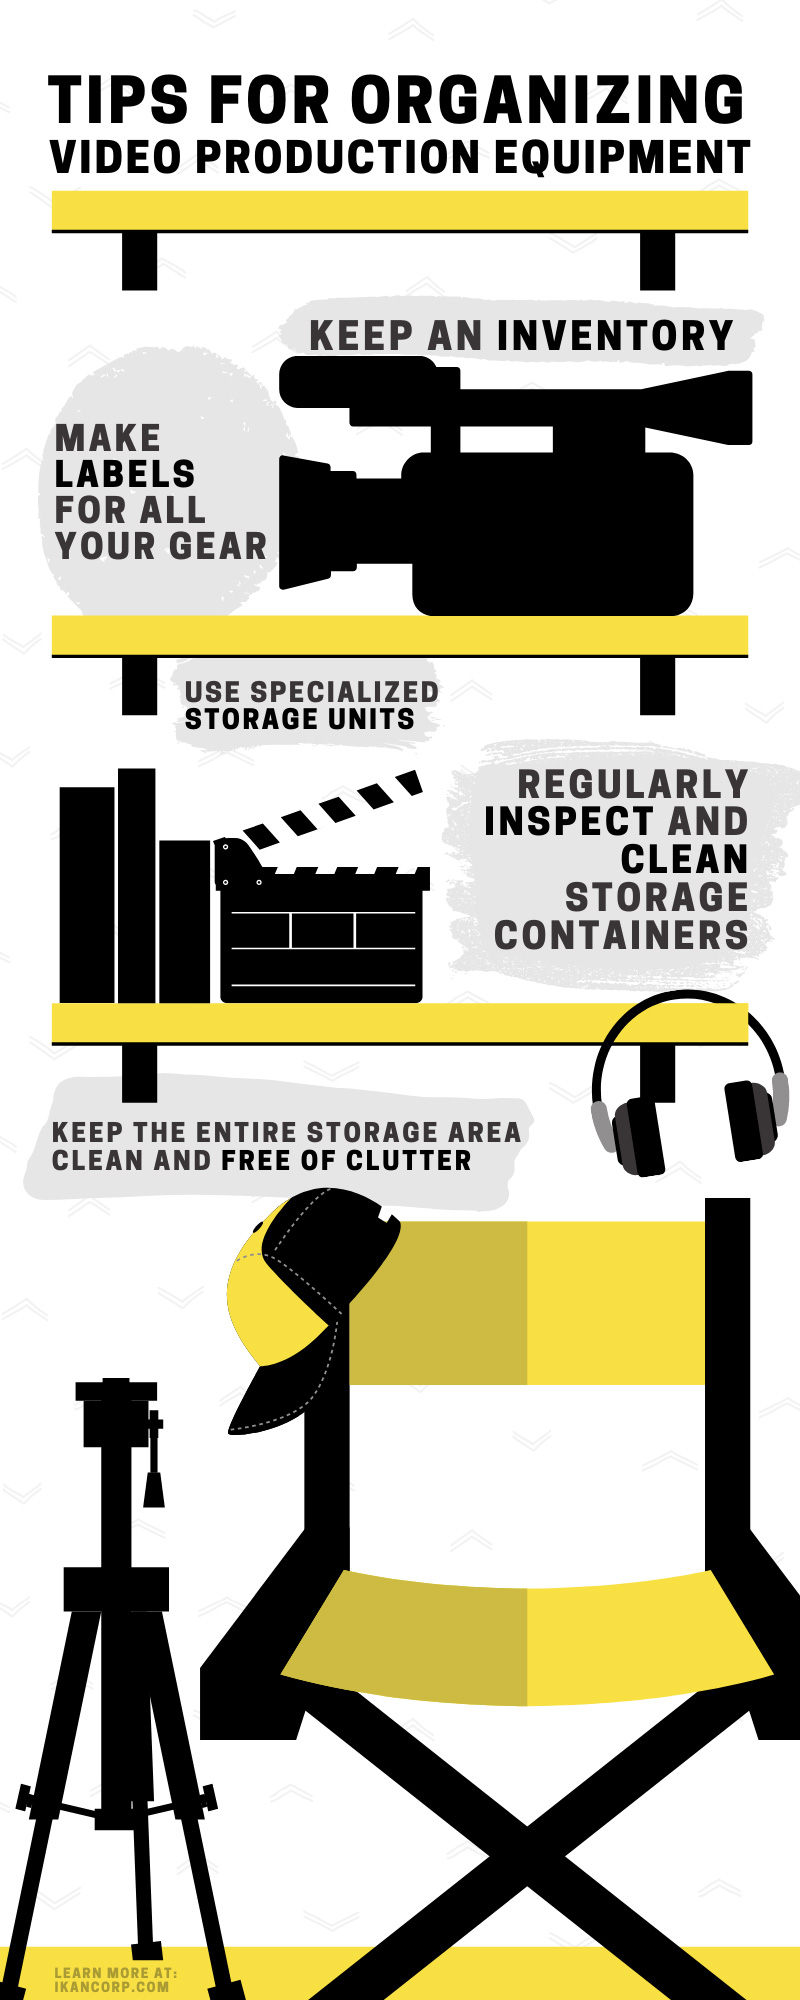 Tips for Organizing Video Production Equipment